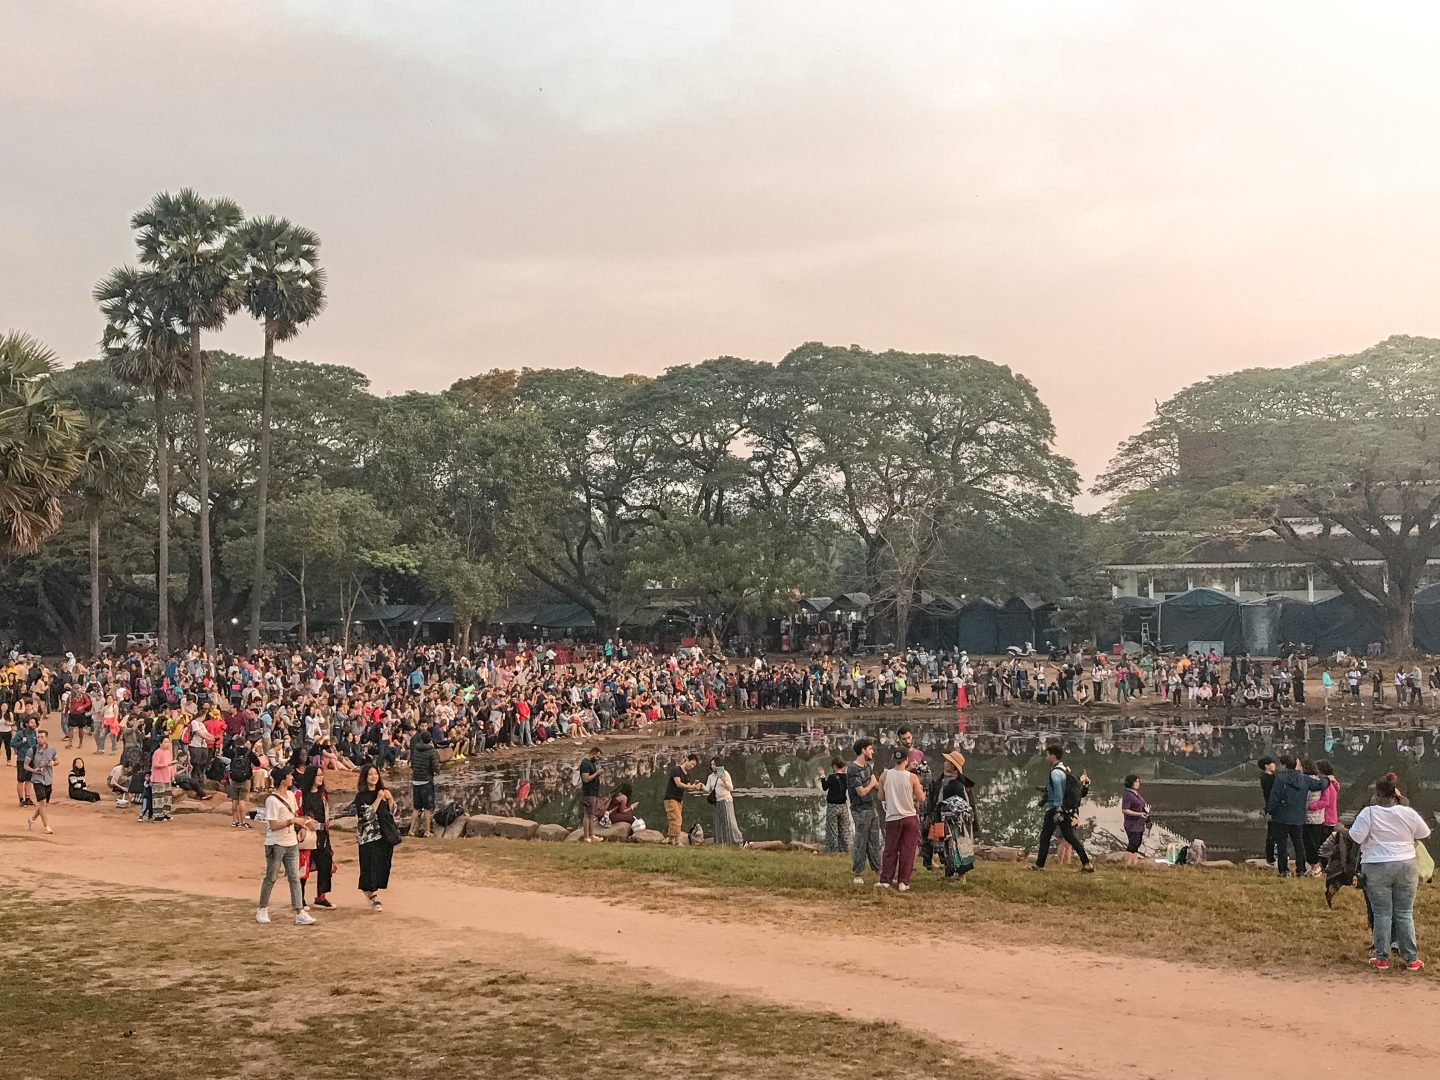 Crowds gathered to see sunrise at Angkor Wat